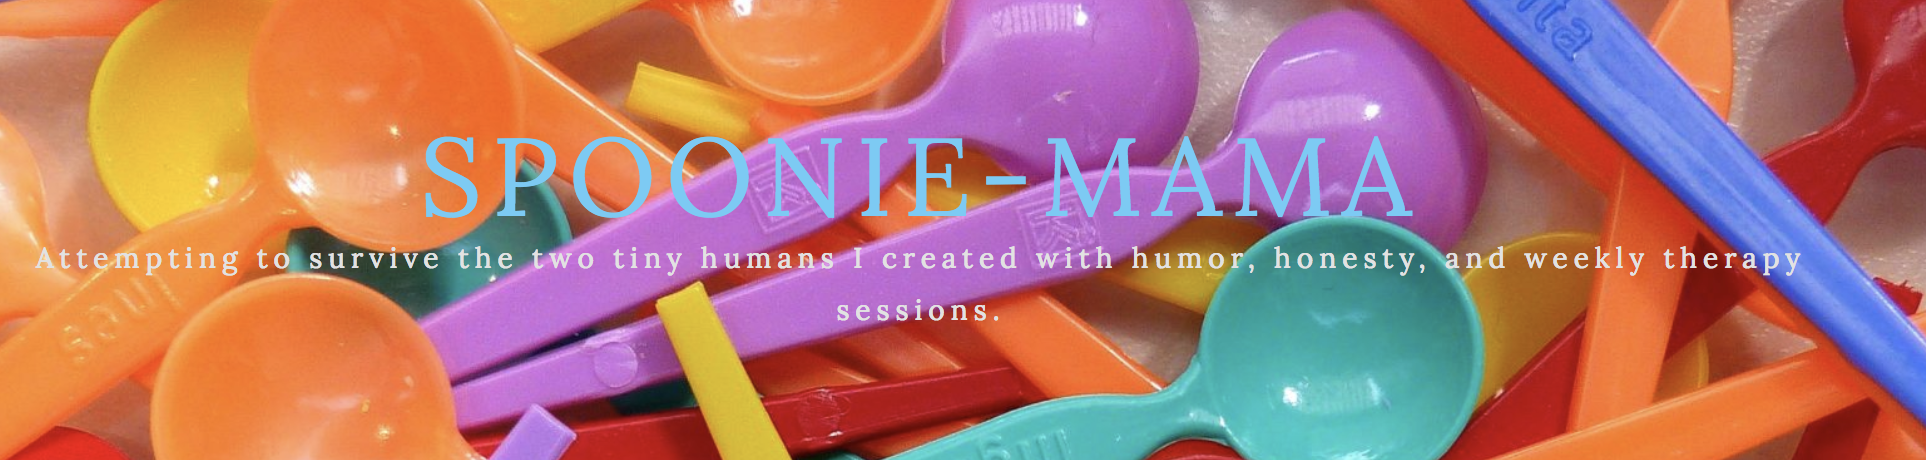 Spoonie-Mama banner